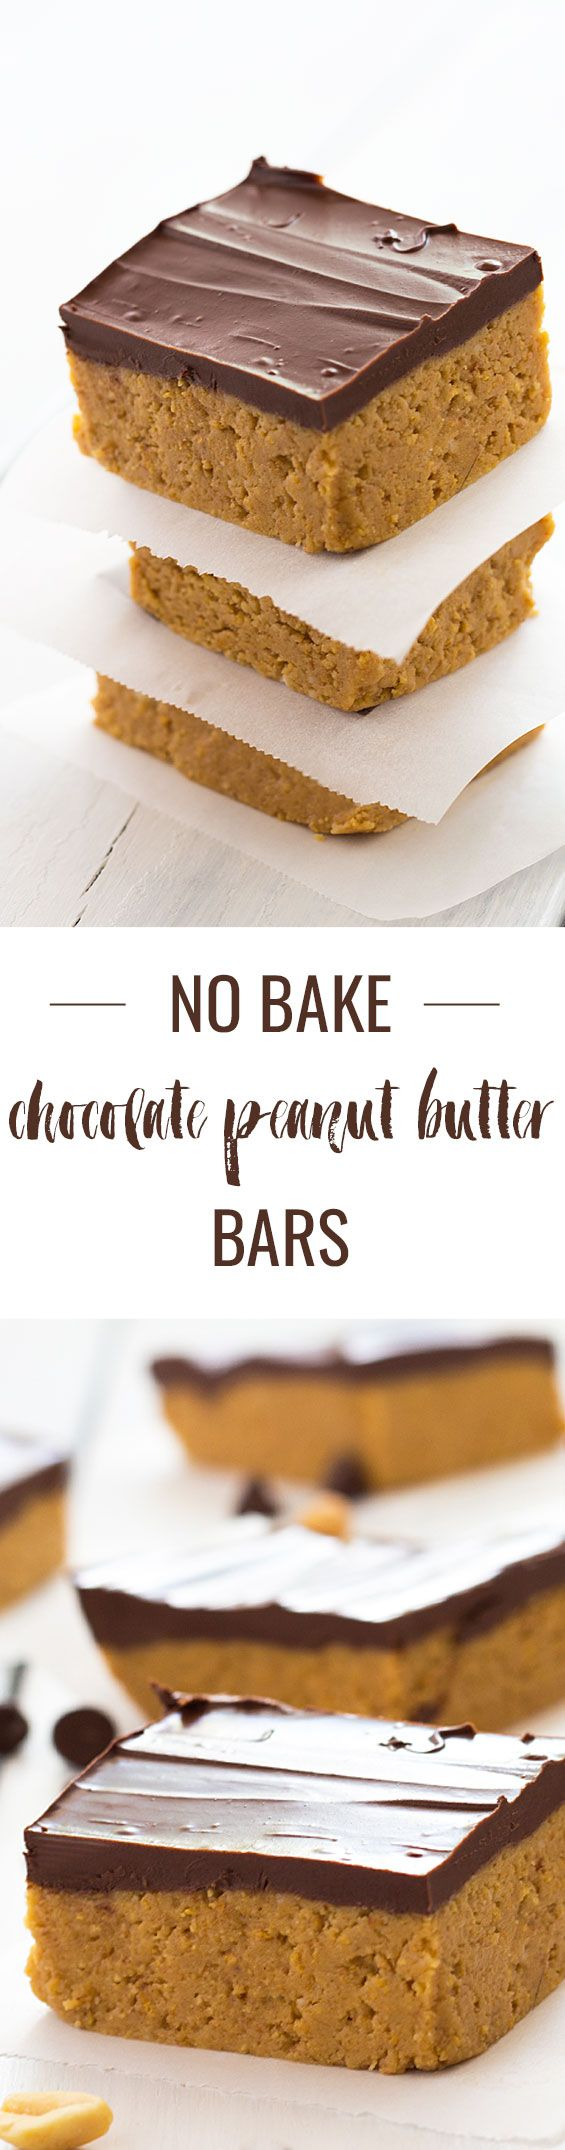 No-Bake Chocolate Peanut Butter Bars - Just 5 ingredients and no oven required!